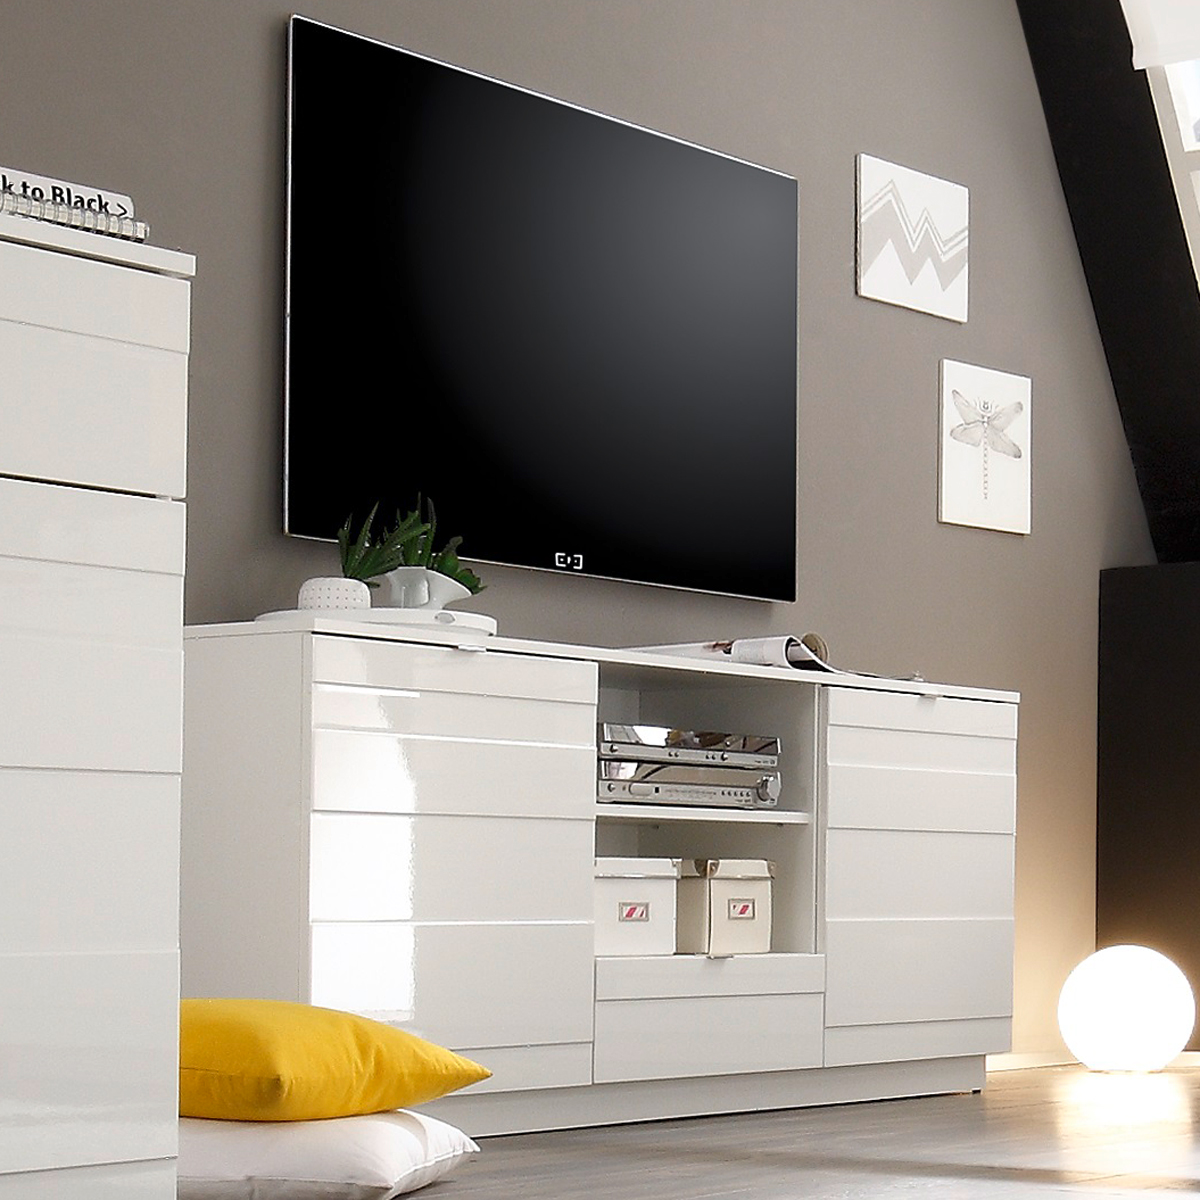 lowboard relief tv board unterschrank kommode in wei hochglanz reliefoptik ebay. Black Bedroom Furniture Sets. Home Design Ideas